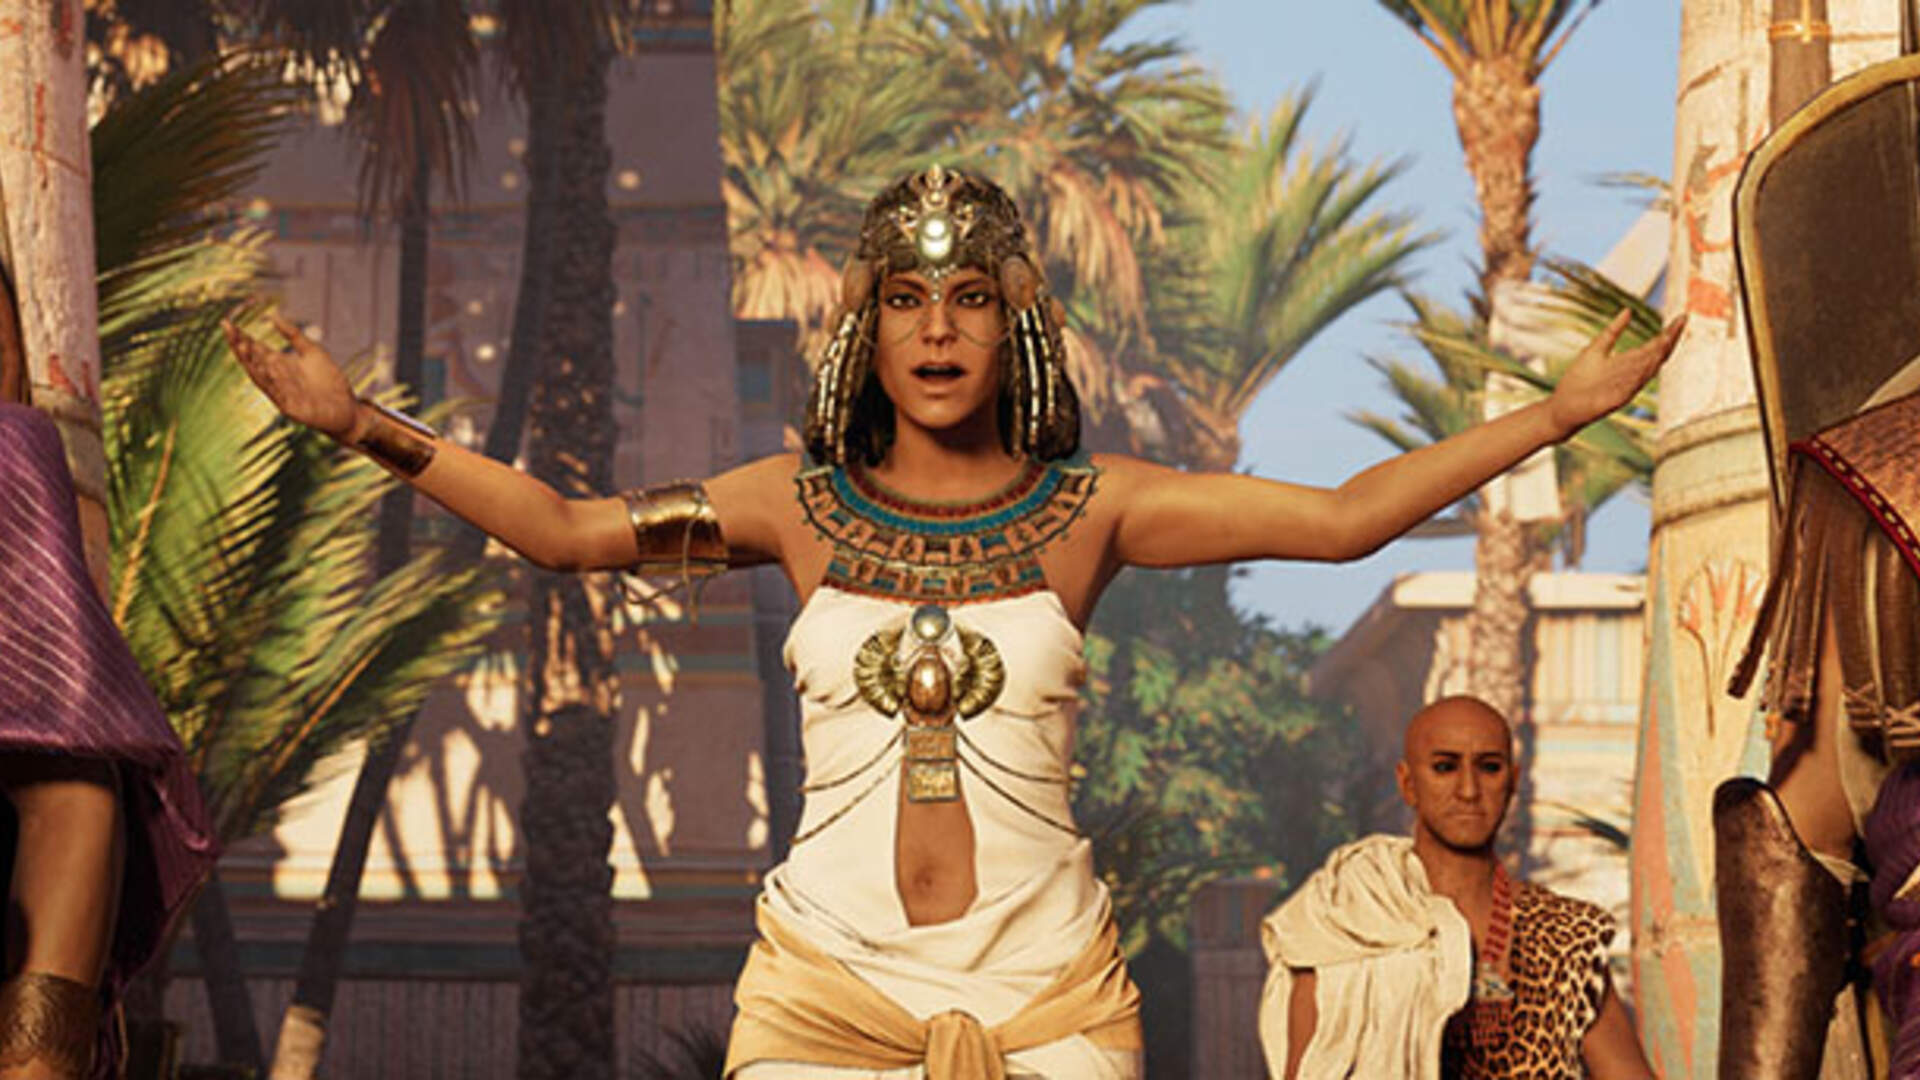 How Assassin's Creed Origins Captures the Politics, Colonialism, and Betrayal of the Real Ancient Egypt